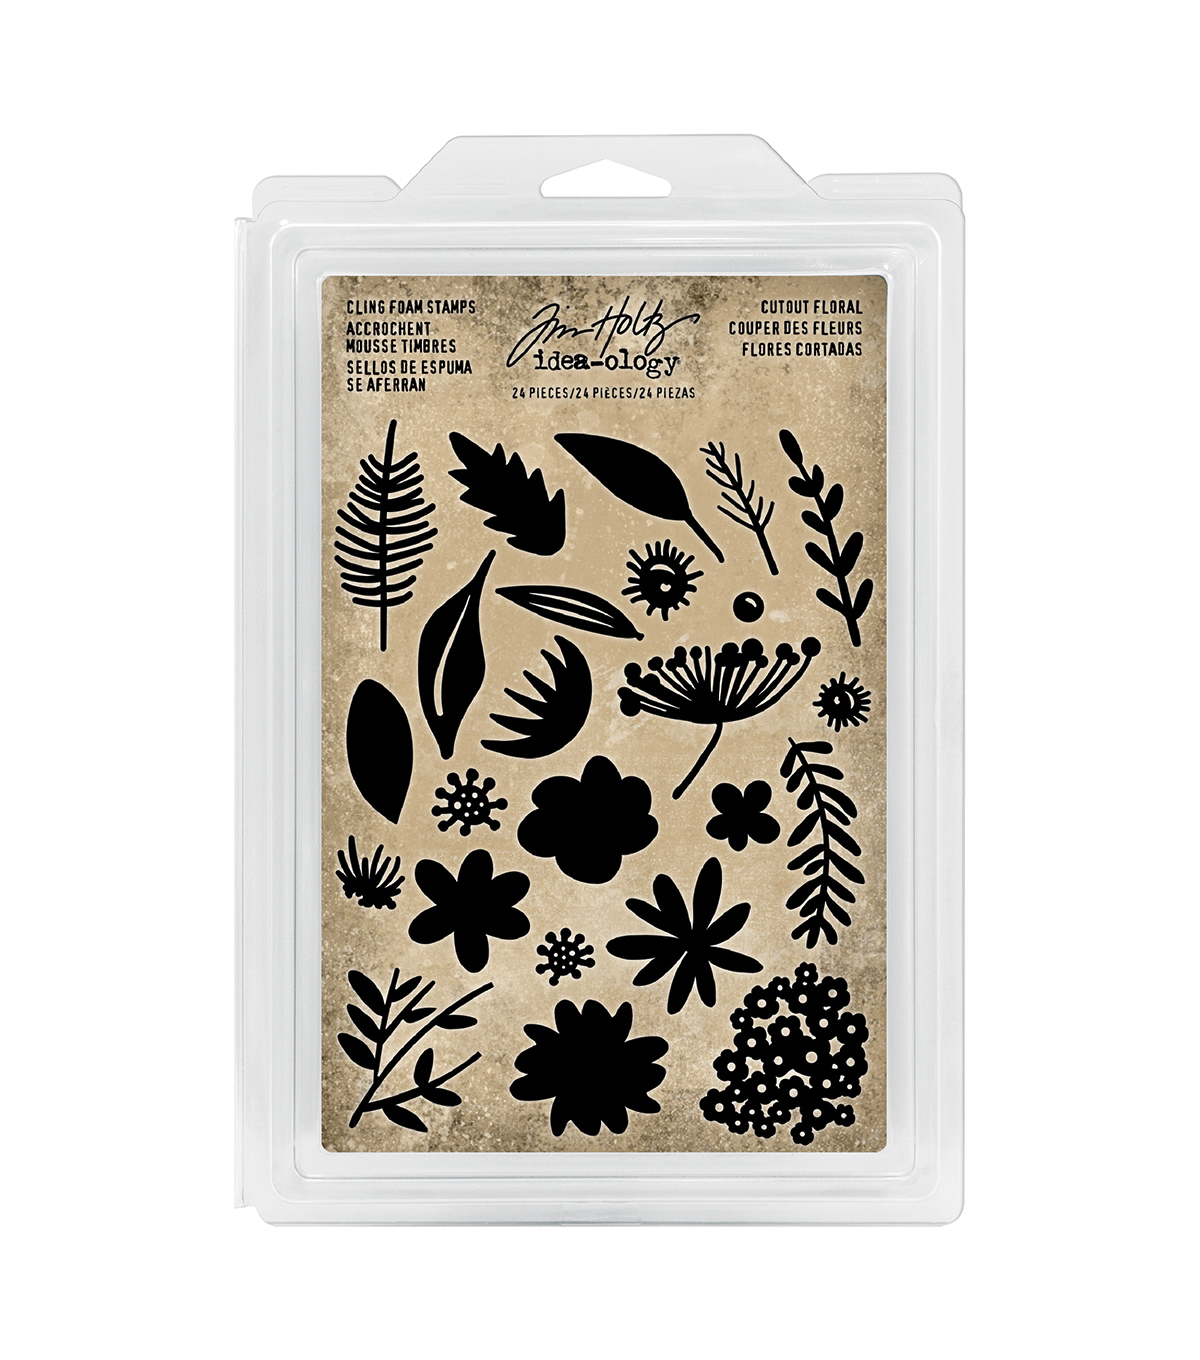 Tim Holtz Idea-ology 24 pk Cling Foam Stamps-Cutout Floral